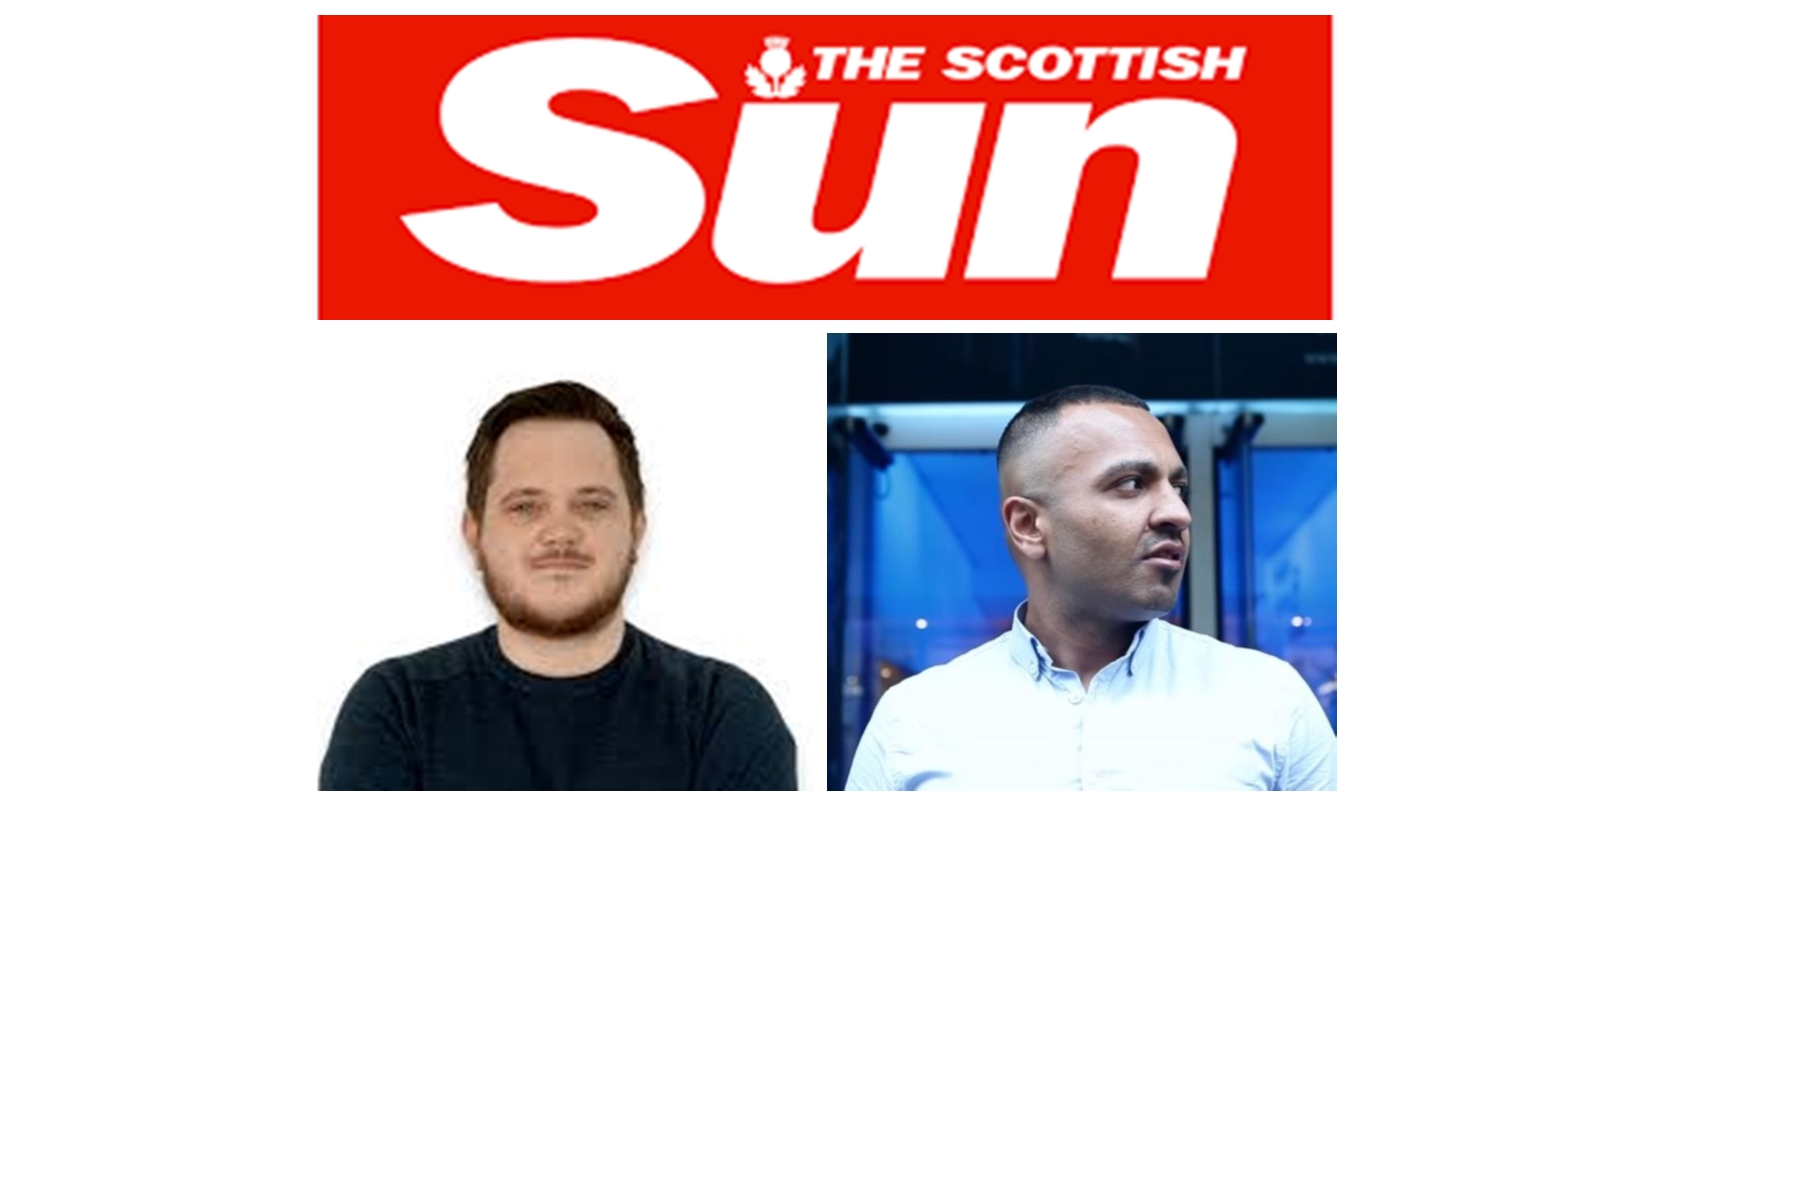 Sleazy Unemployed Reporter Mark Hendry, Writes Predatory Freelance Article For Vile Newspaper The Scottish Sun, About Innocent Man Adnan Ahmed aka Addy Agame